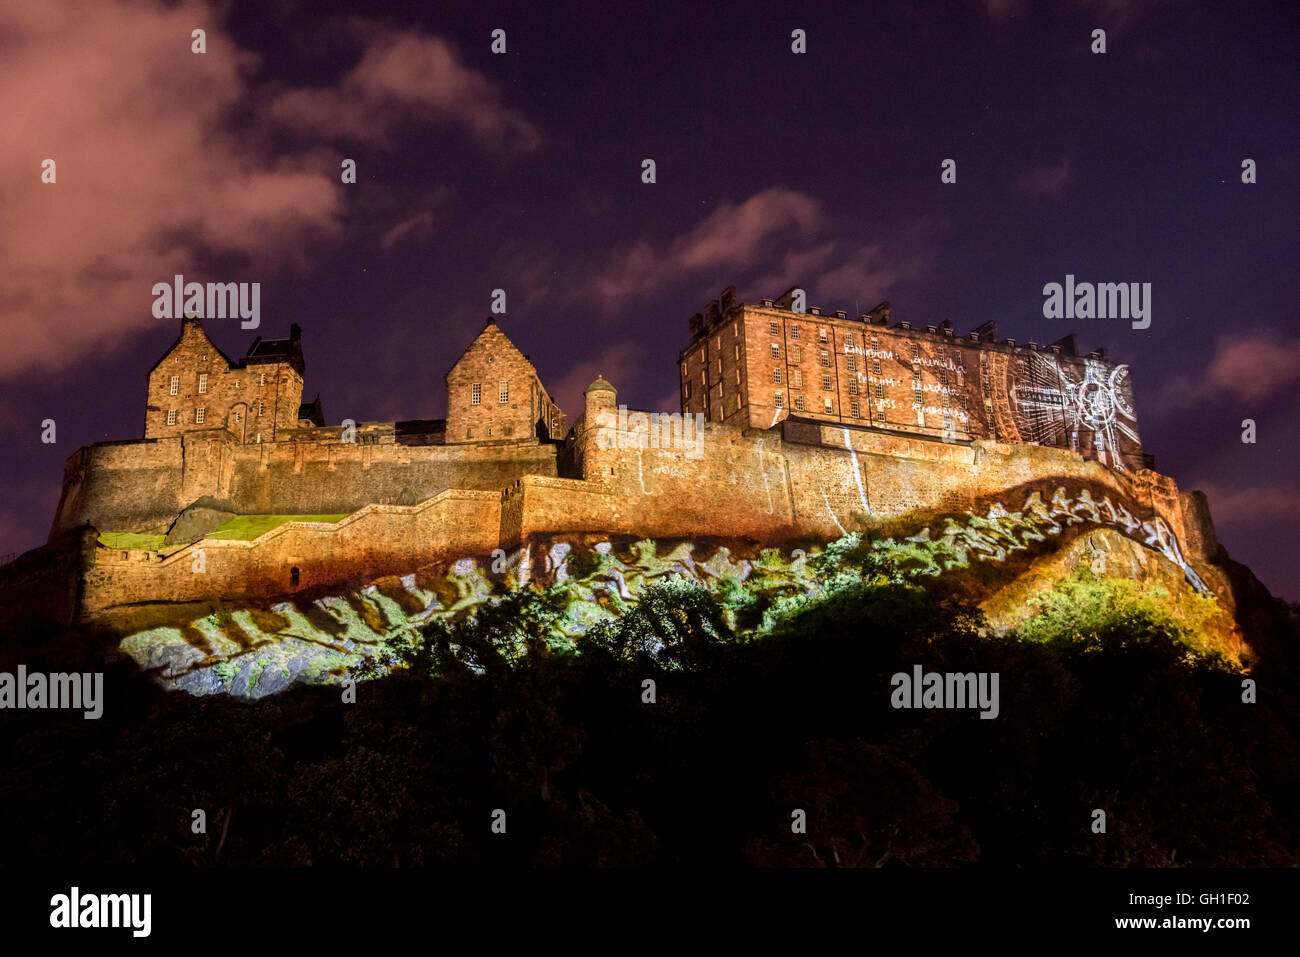 Edinburgh, Scotland, UK. 7th August, 2016. Light and Laser projections projected on the Edinburgh Castle facade - Stock Image